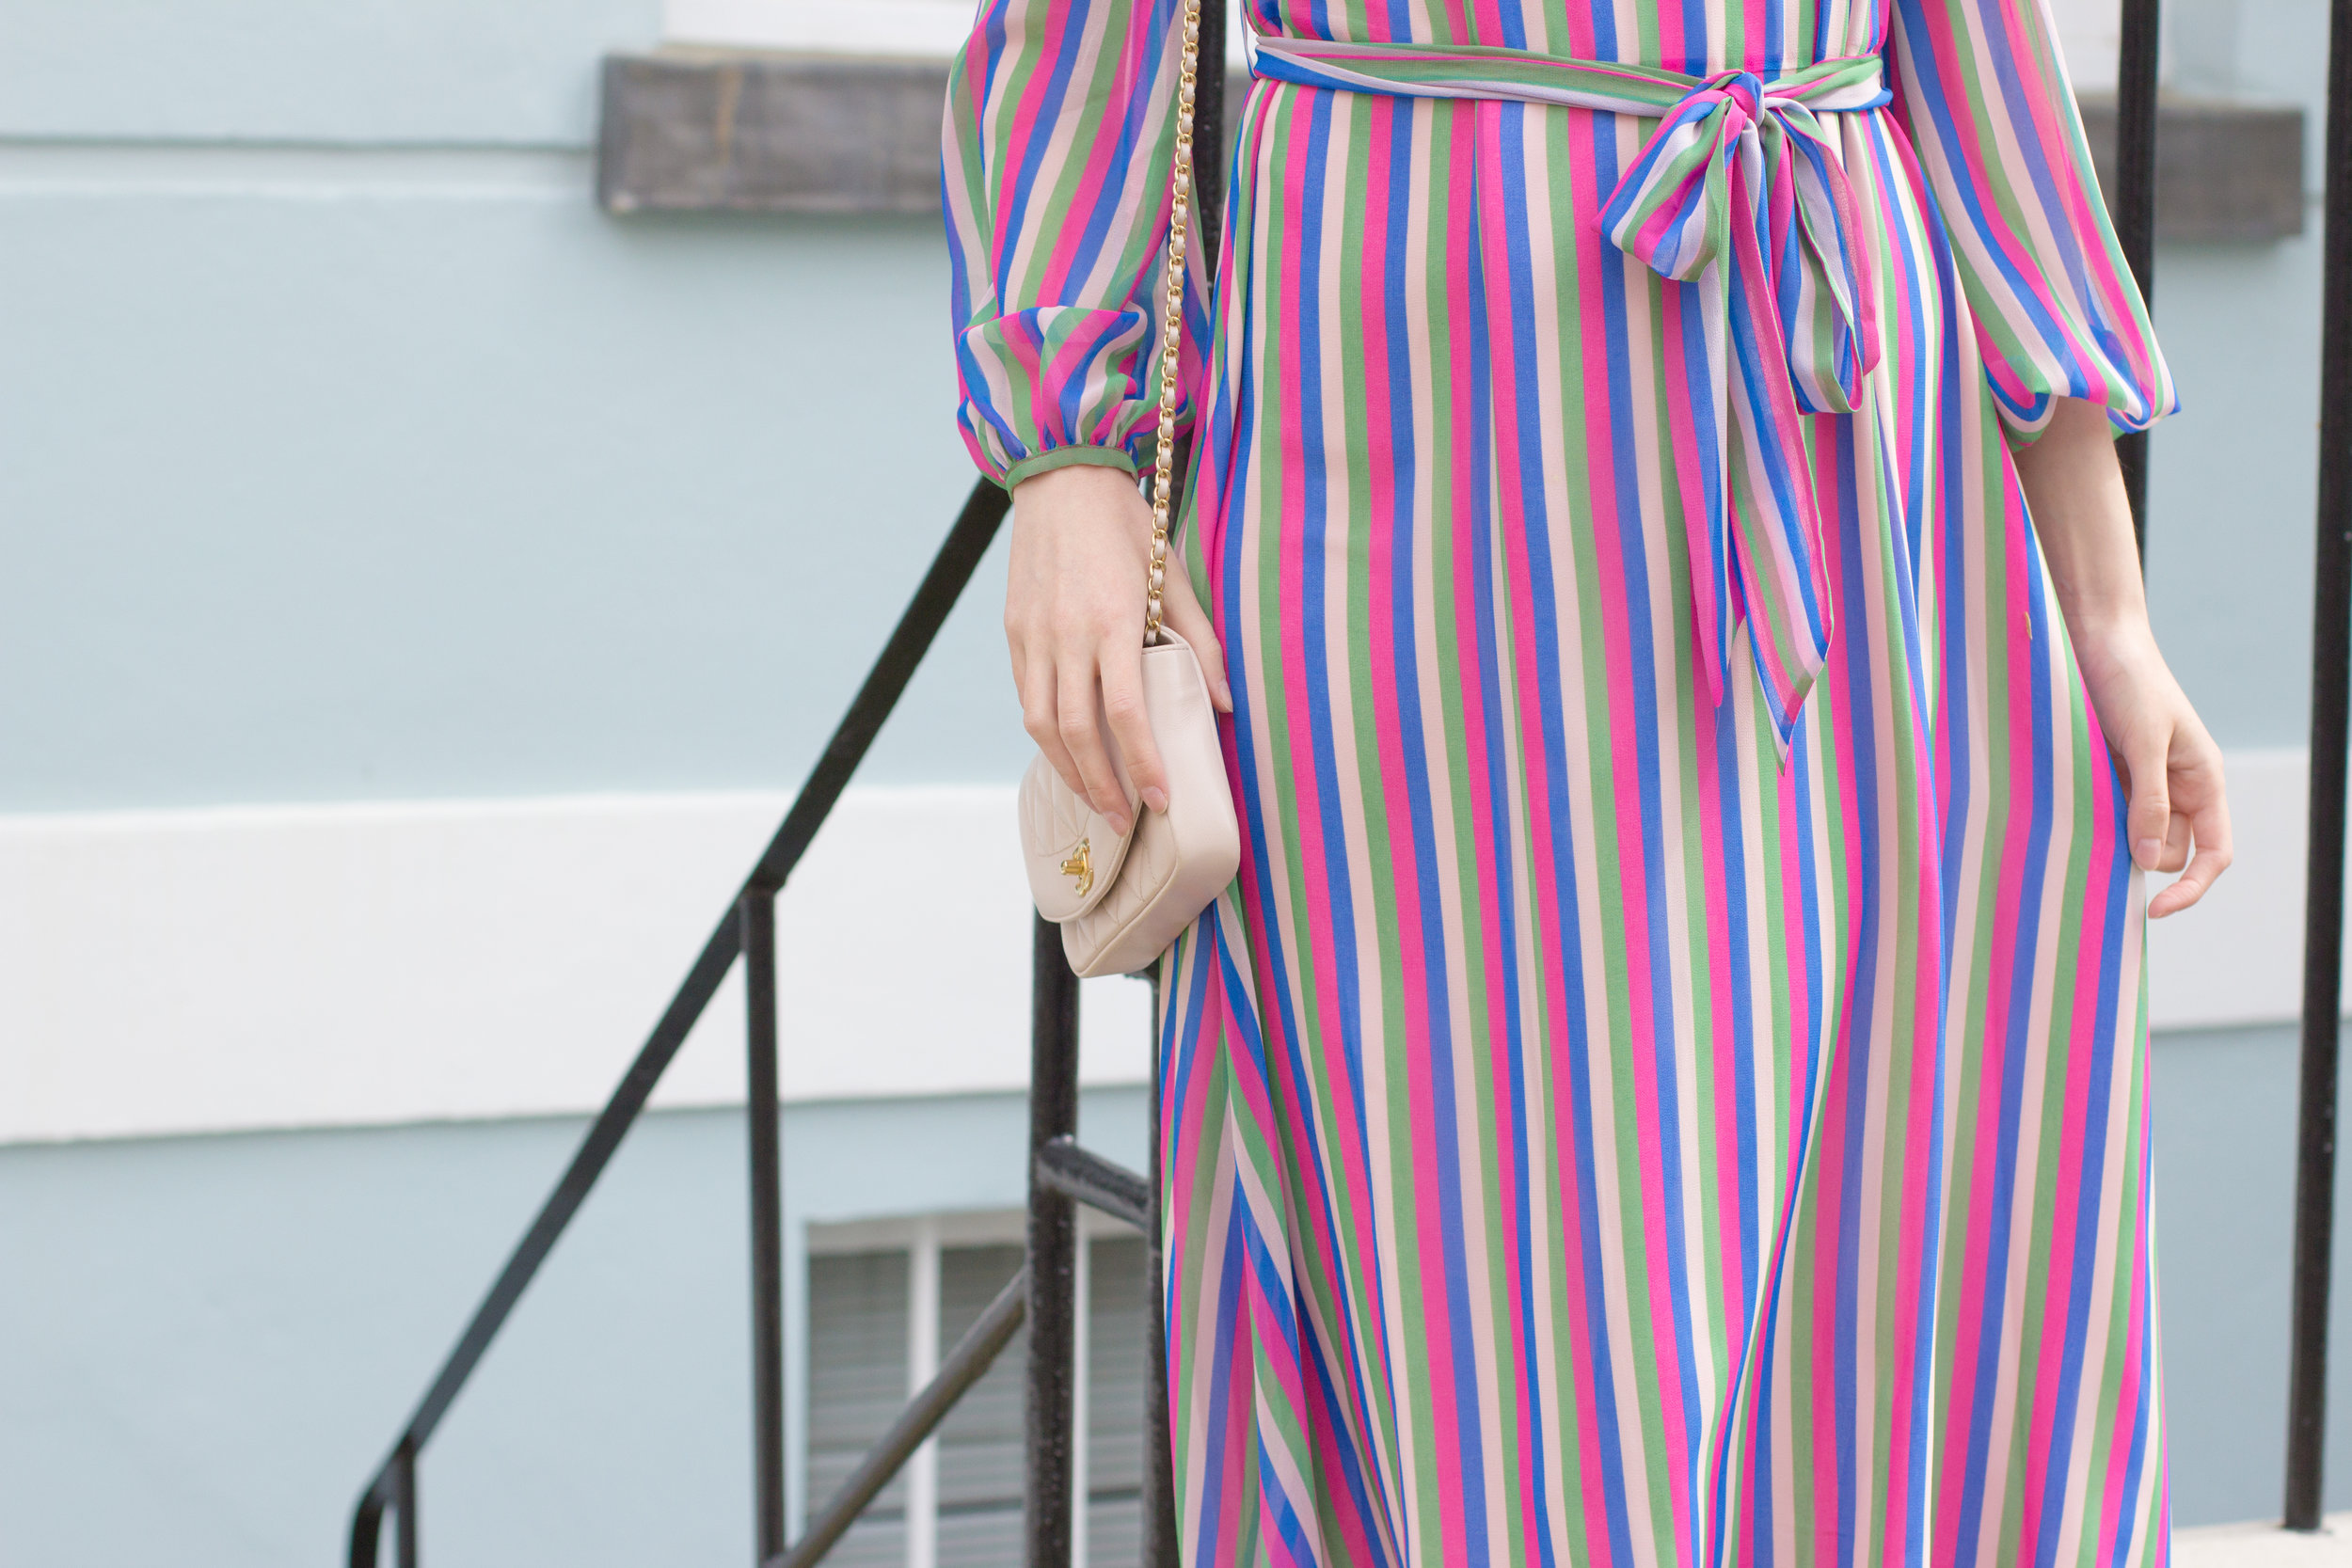 Exploring the colorful townhomes of Primrose Hill, London wearing a Boden occasionwear dress and blush pink Chanel bag